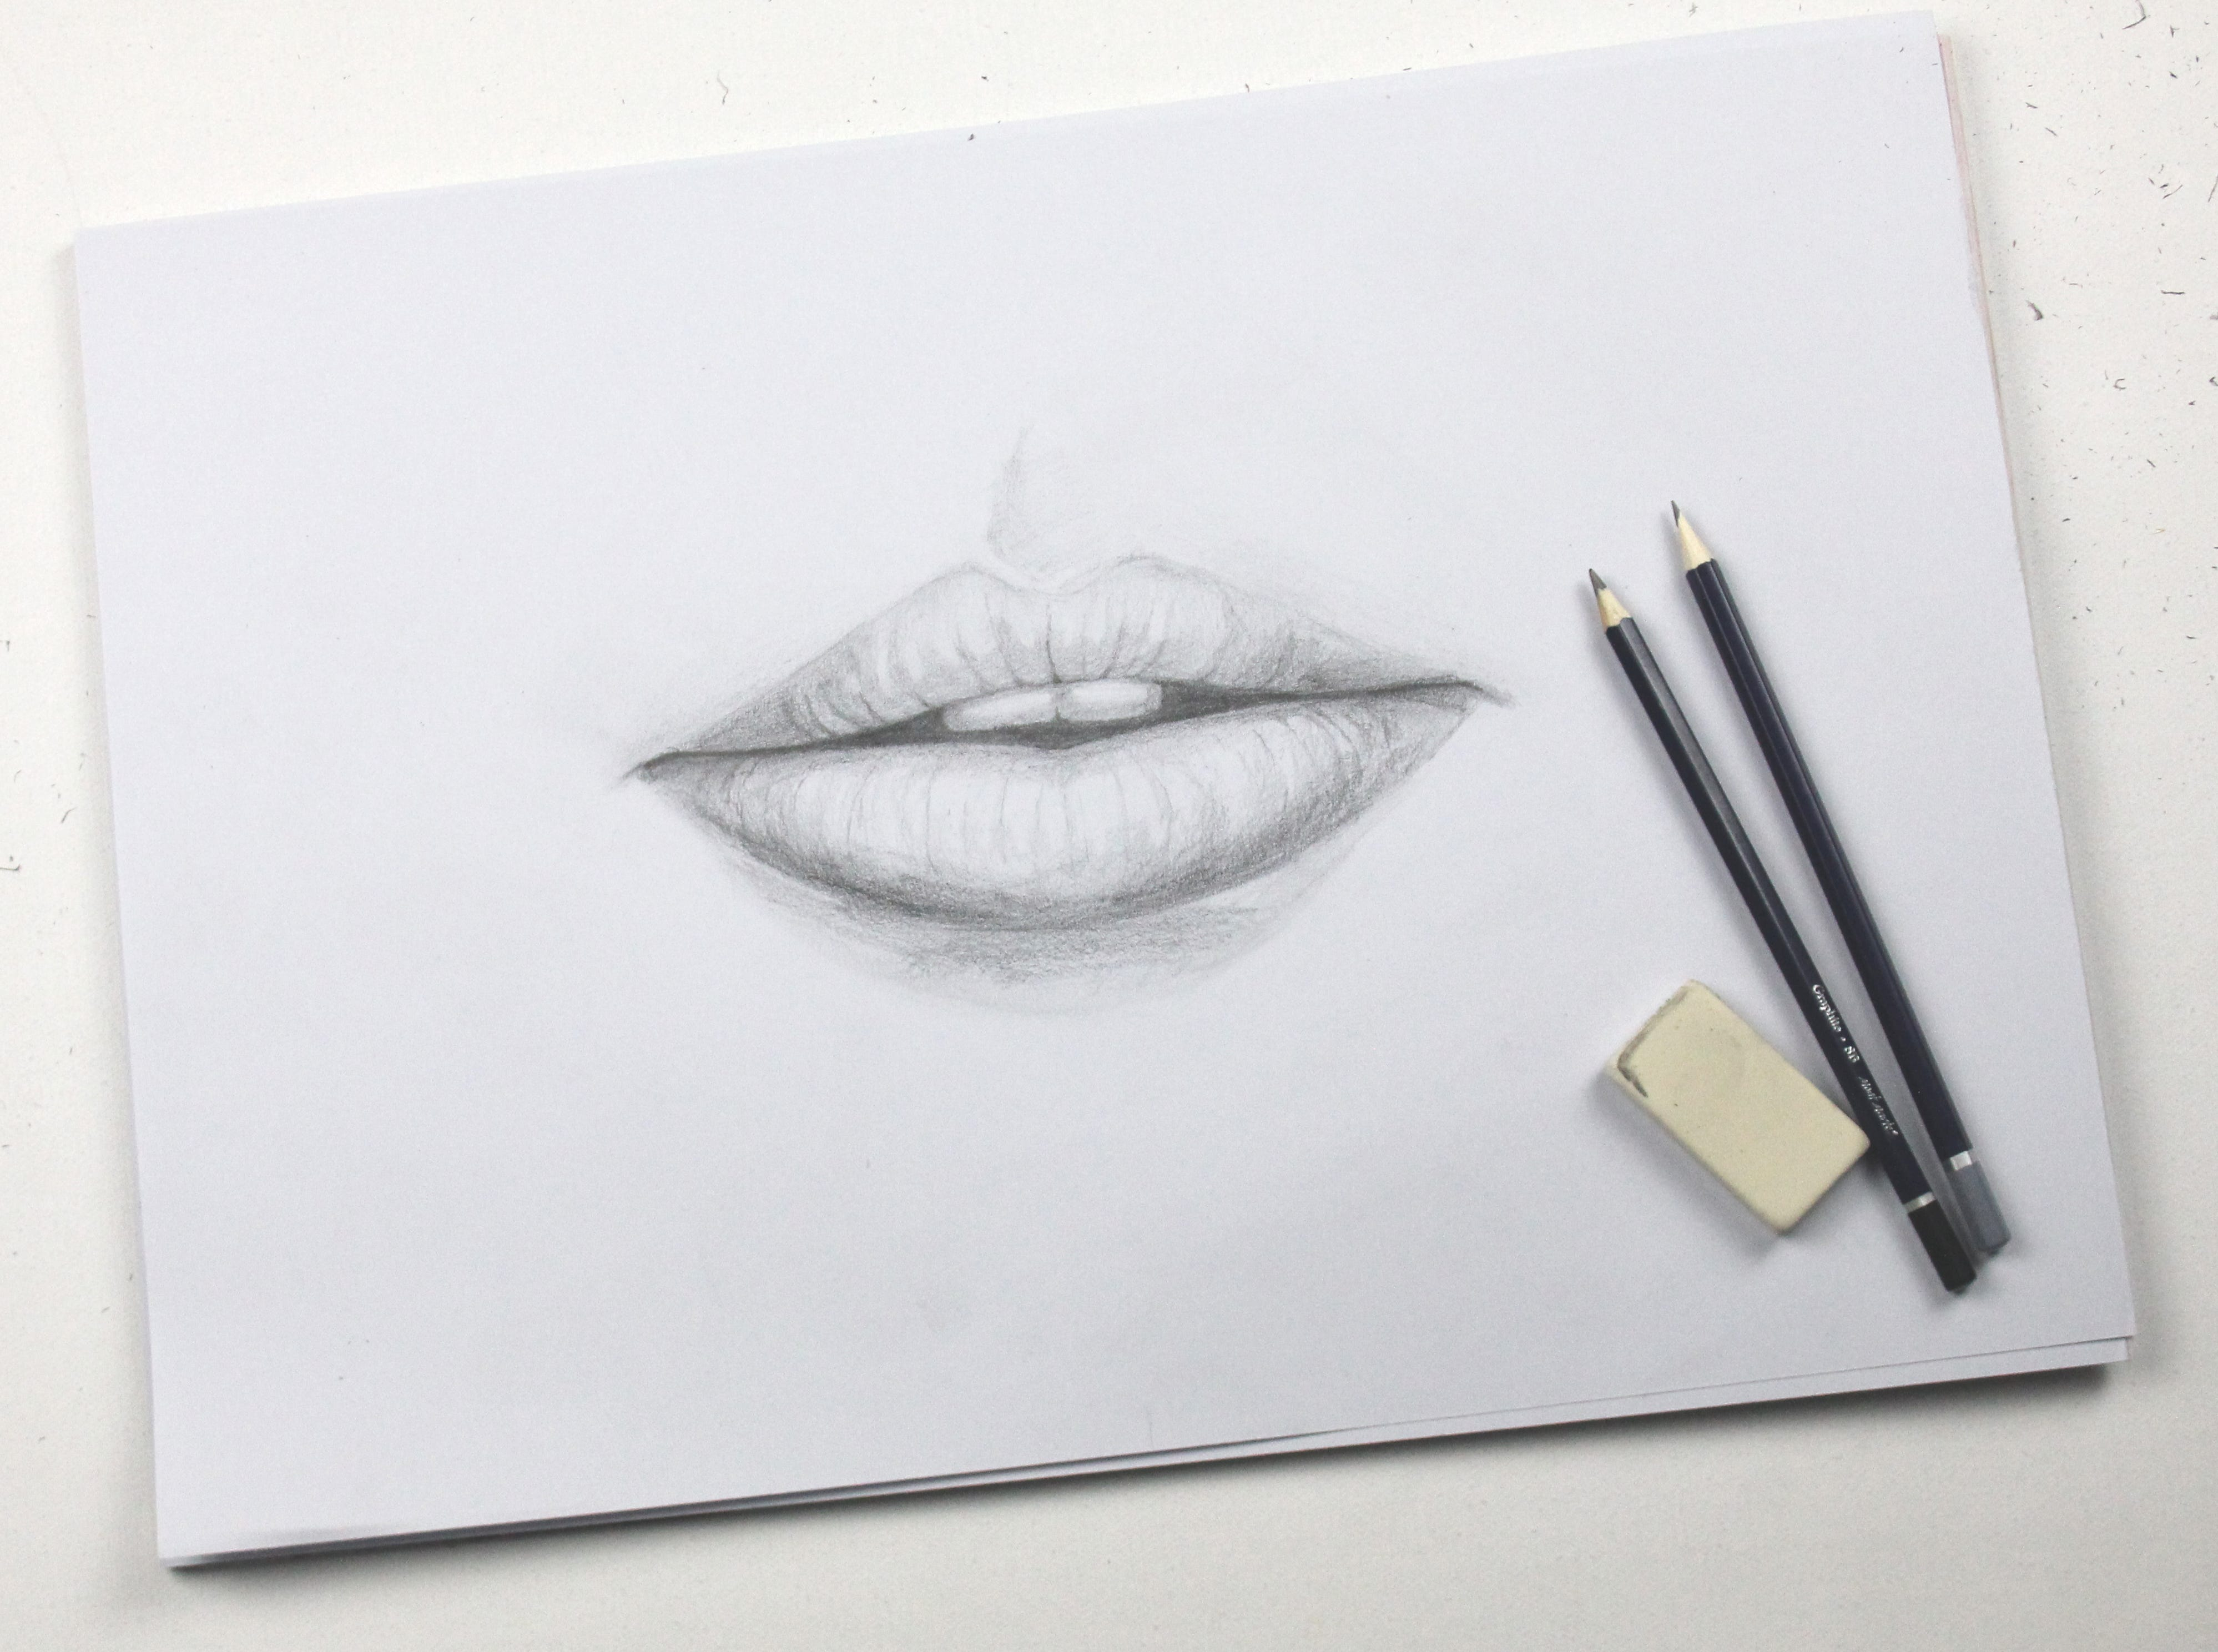 15 drawing ideas that anyone can try image 2